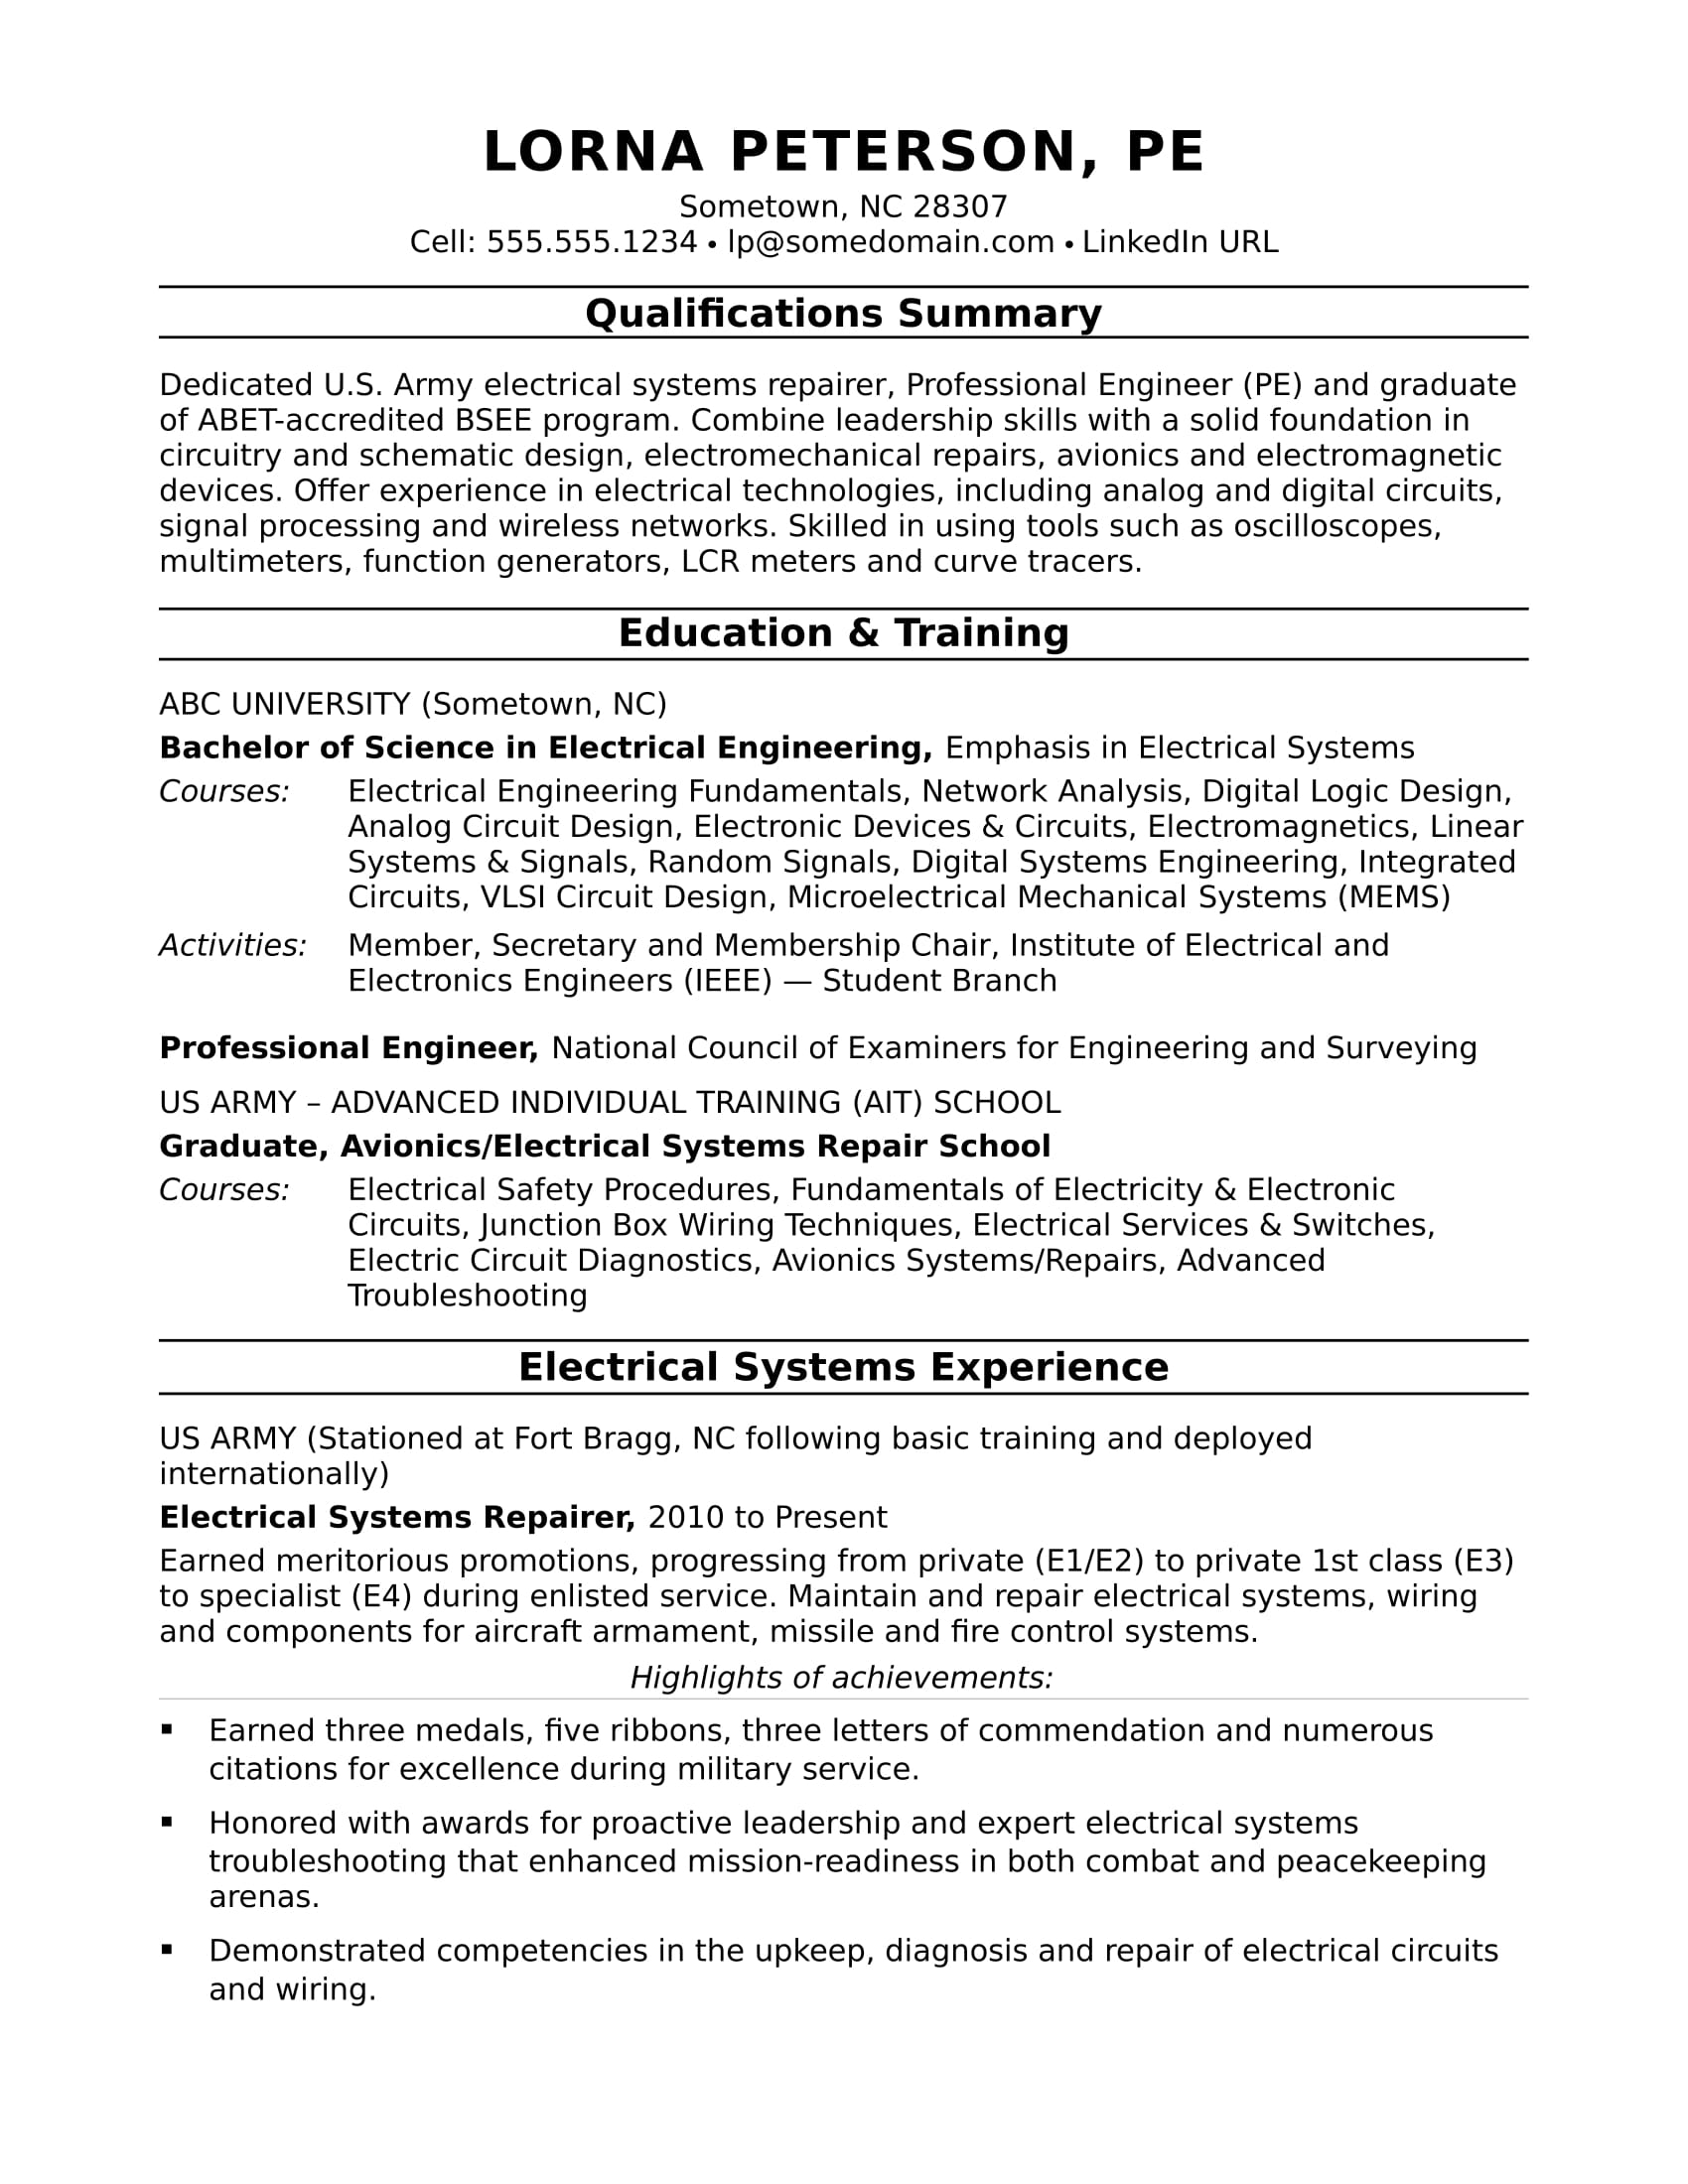 Sample Resume For A Midlevel Electrical Engineer Monster Com